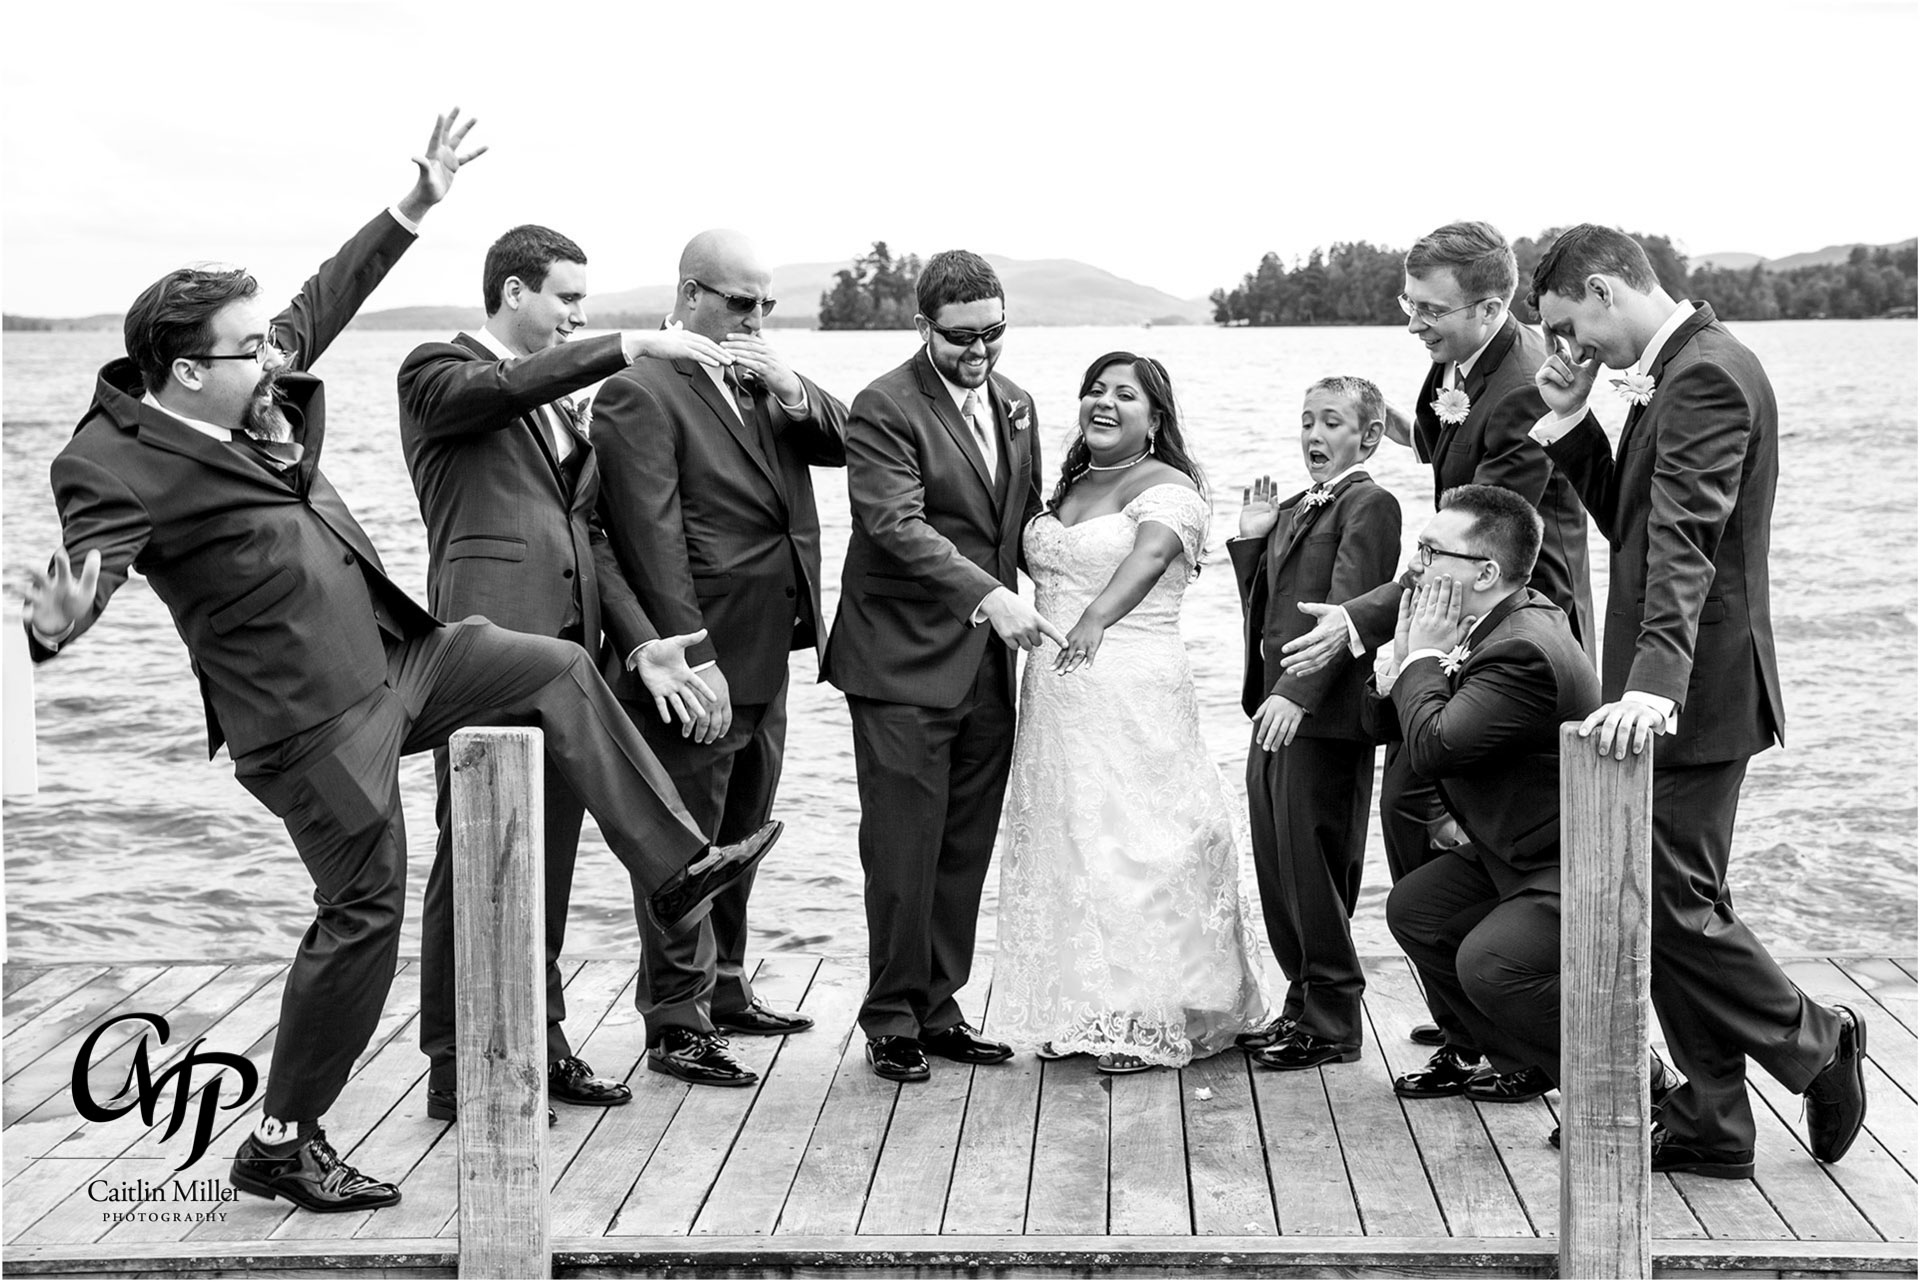 chromik-22.jpg from Juliana and Dan's Lake George wedding at the Sagamore Resort on Lake George, NY by Saratoga Wedding Photographer Caitlin Miller Photography. Lake George Wedding Photographer. Stamford wedding photographer. Albany wedding photographer. Greenwich Wedding Photographer. Saratoga Wedding Photographer